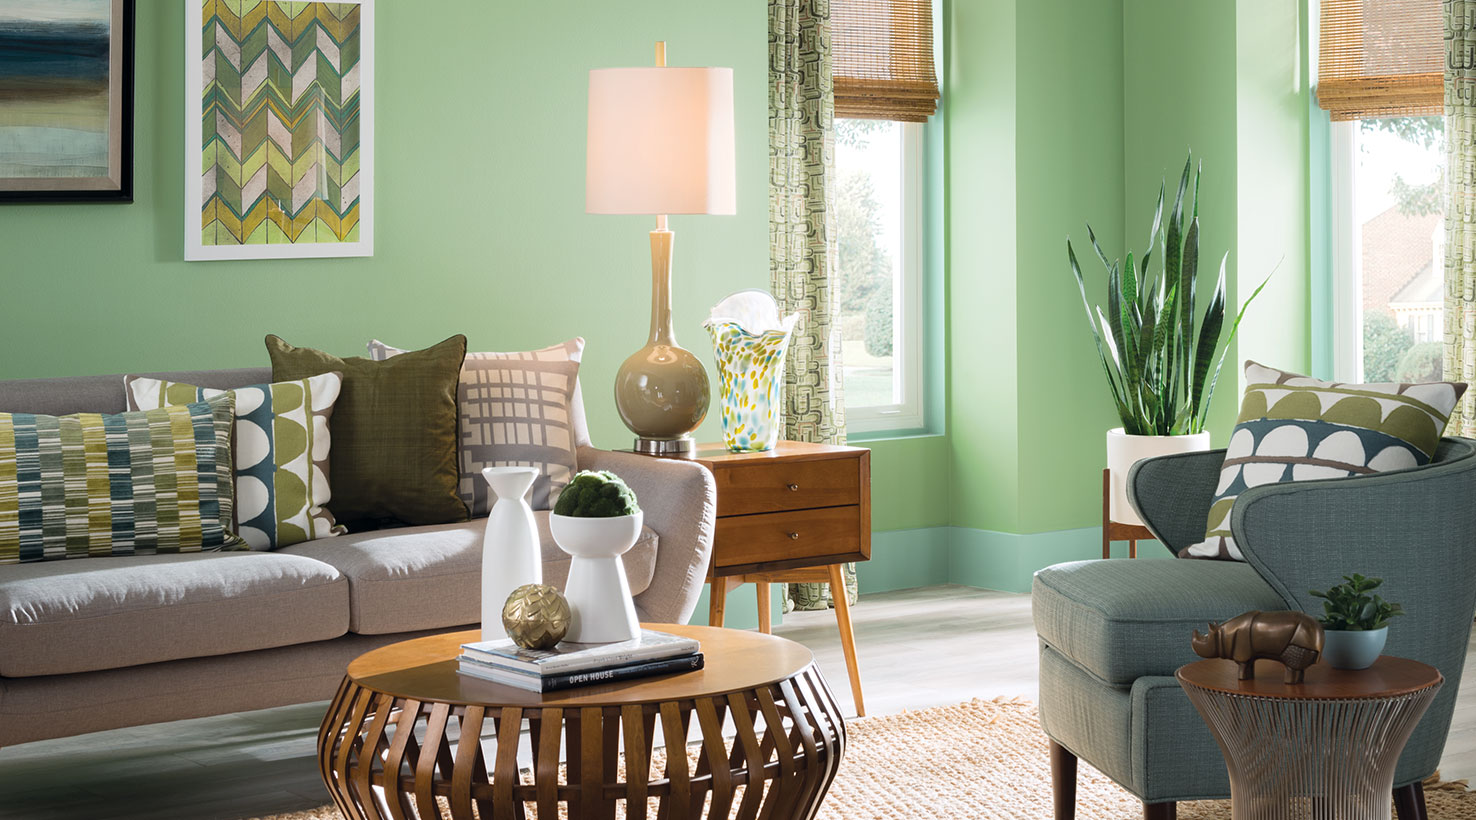 Living room paint color ideas inspiration gallery sherwin williams - Green paint colors for living room ...